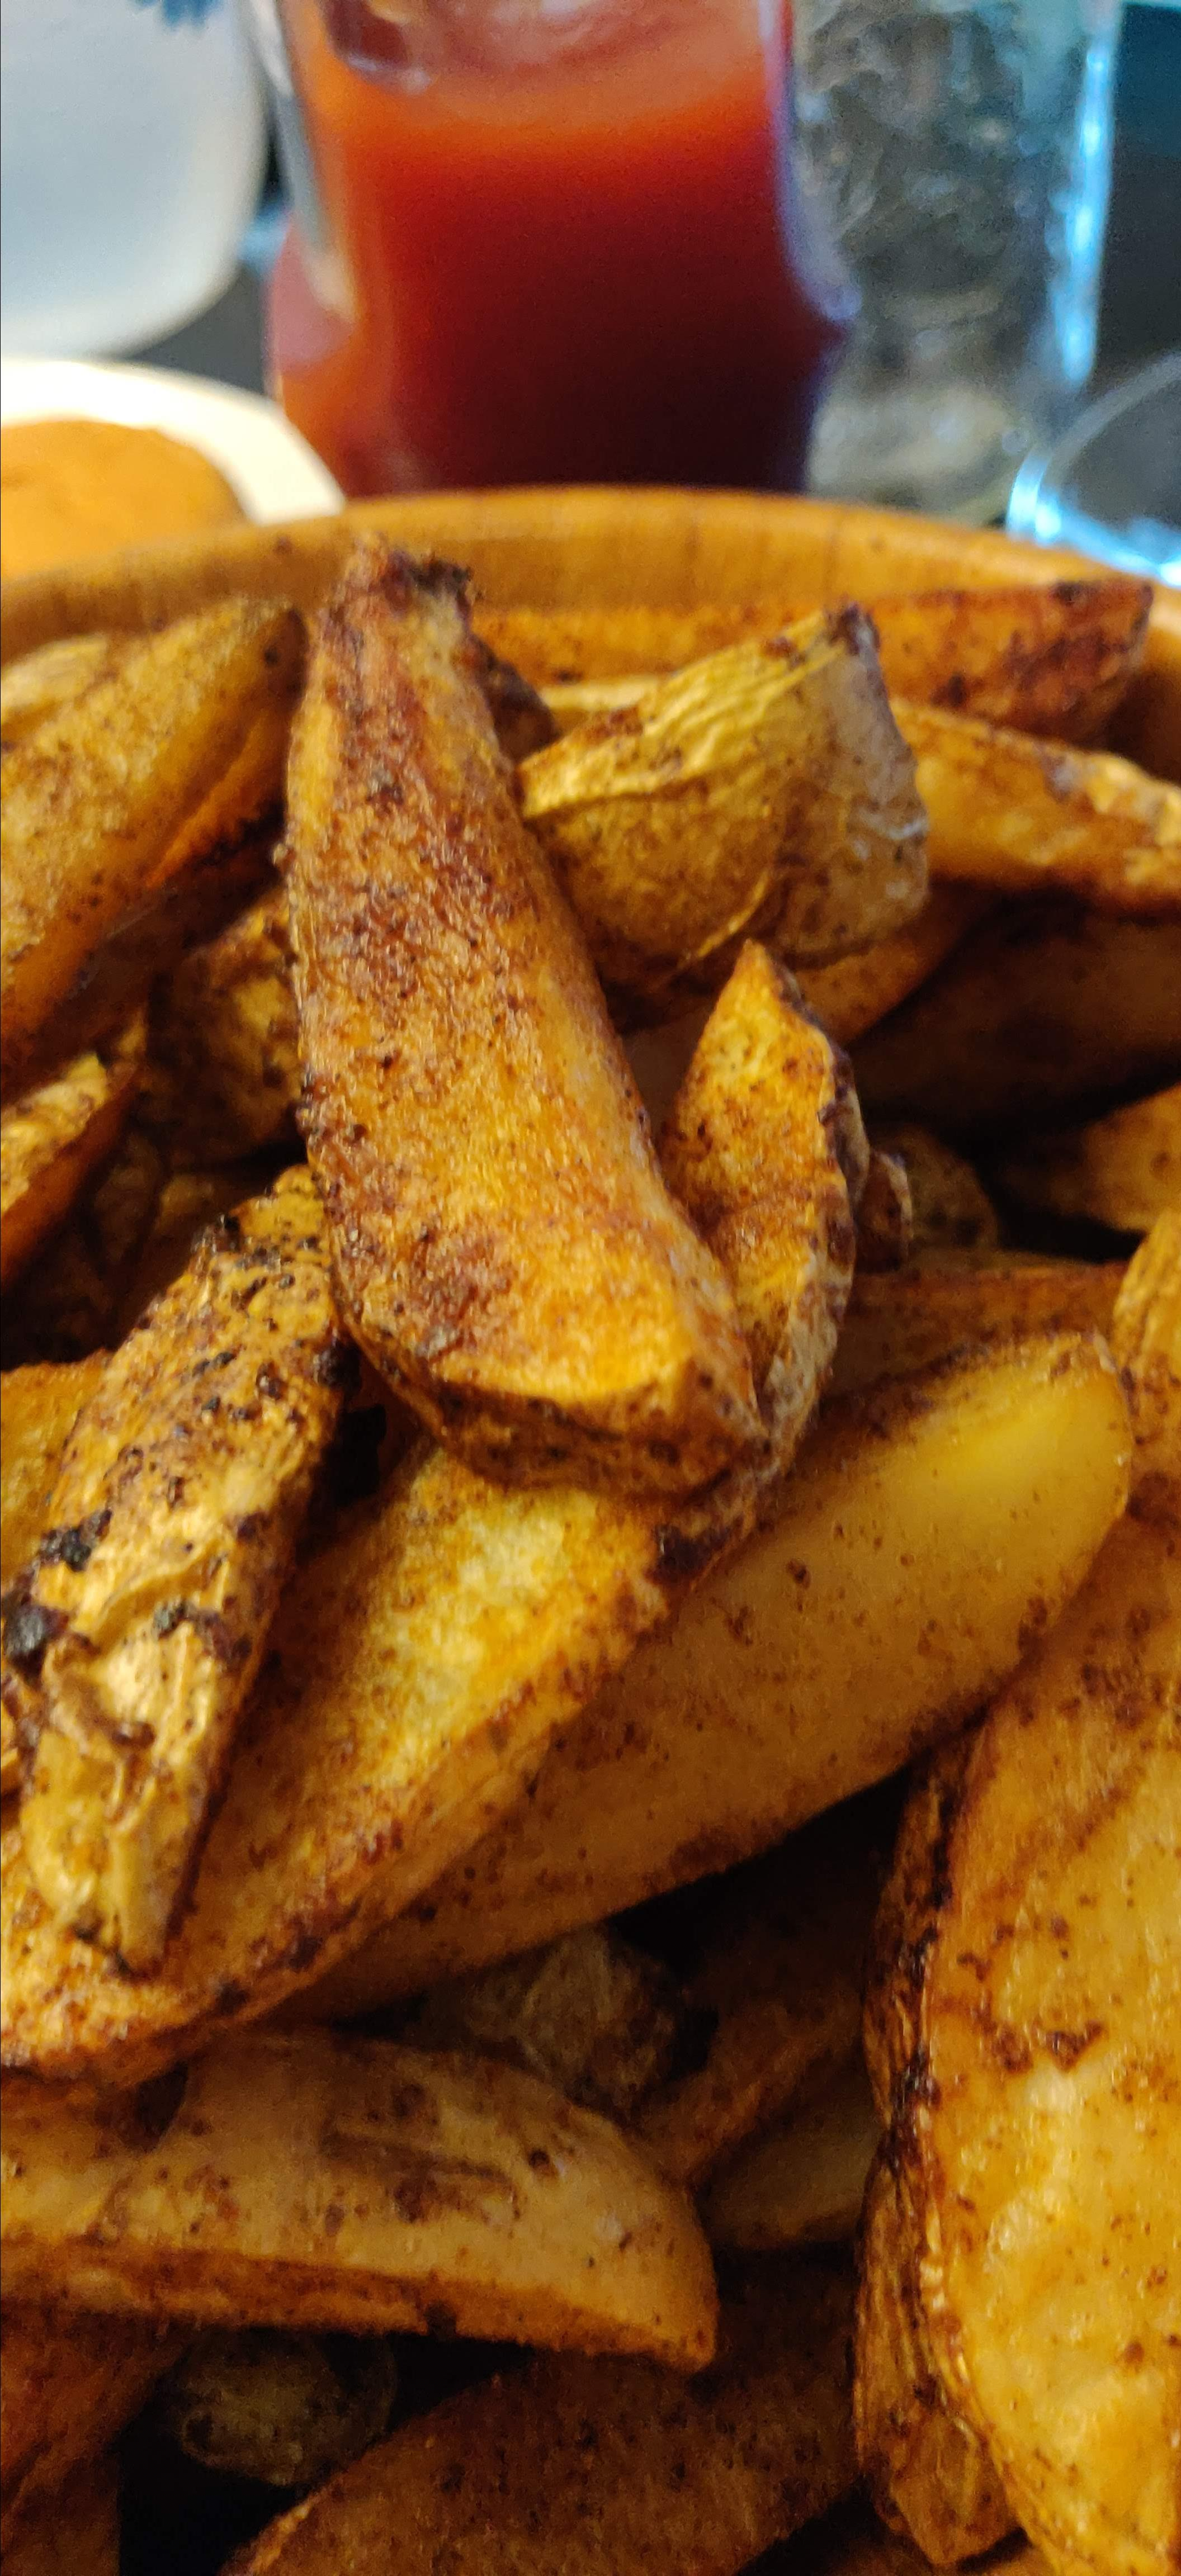 Baked French Fries I Geoff Pender